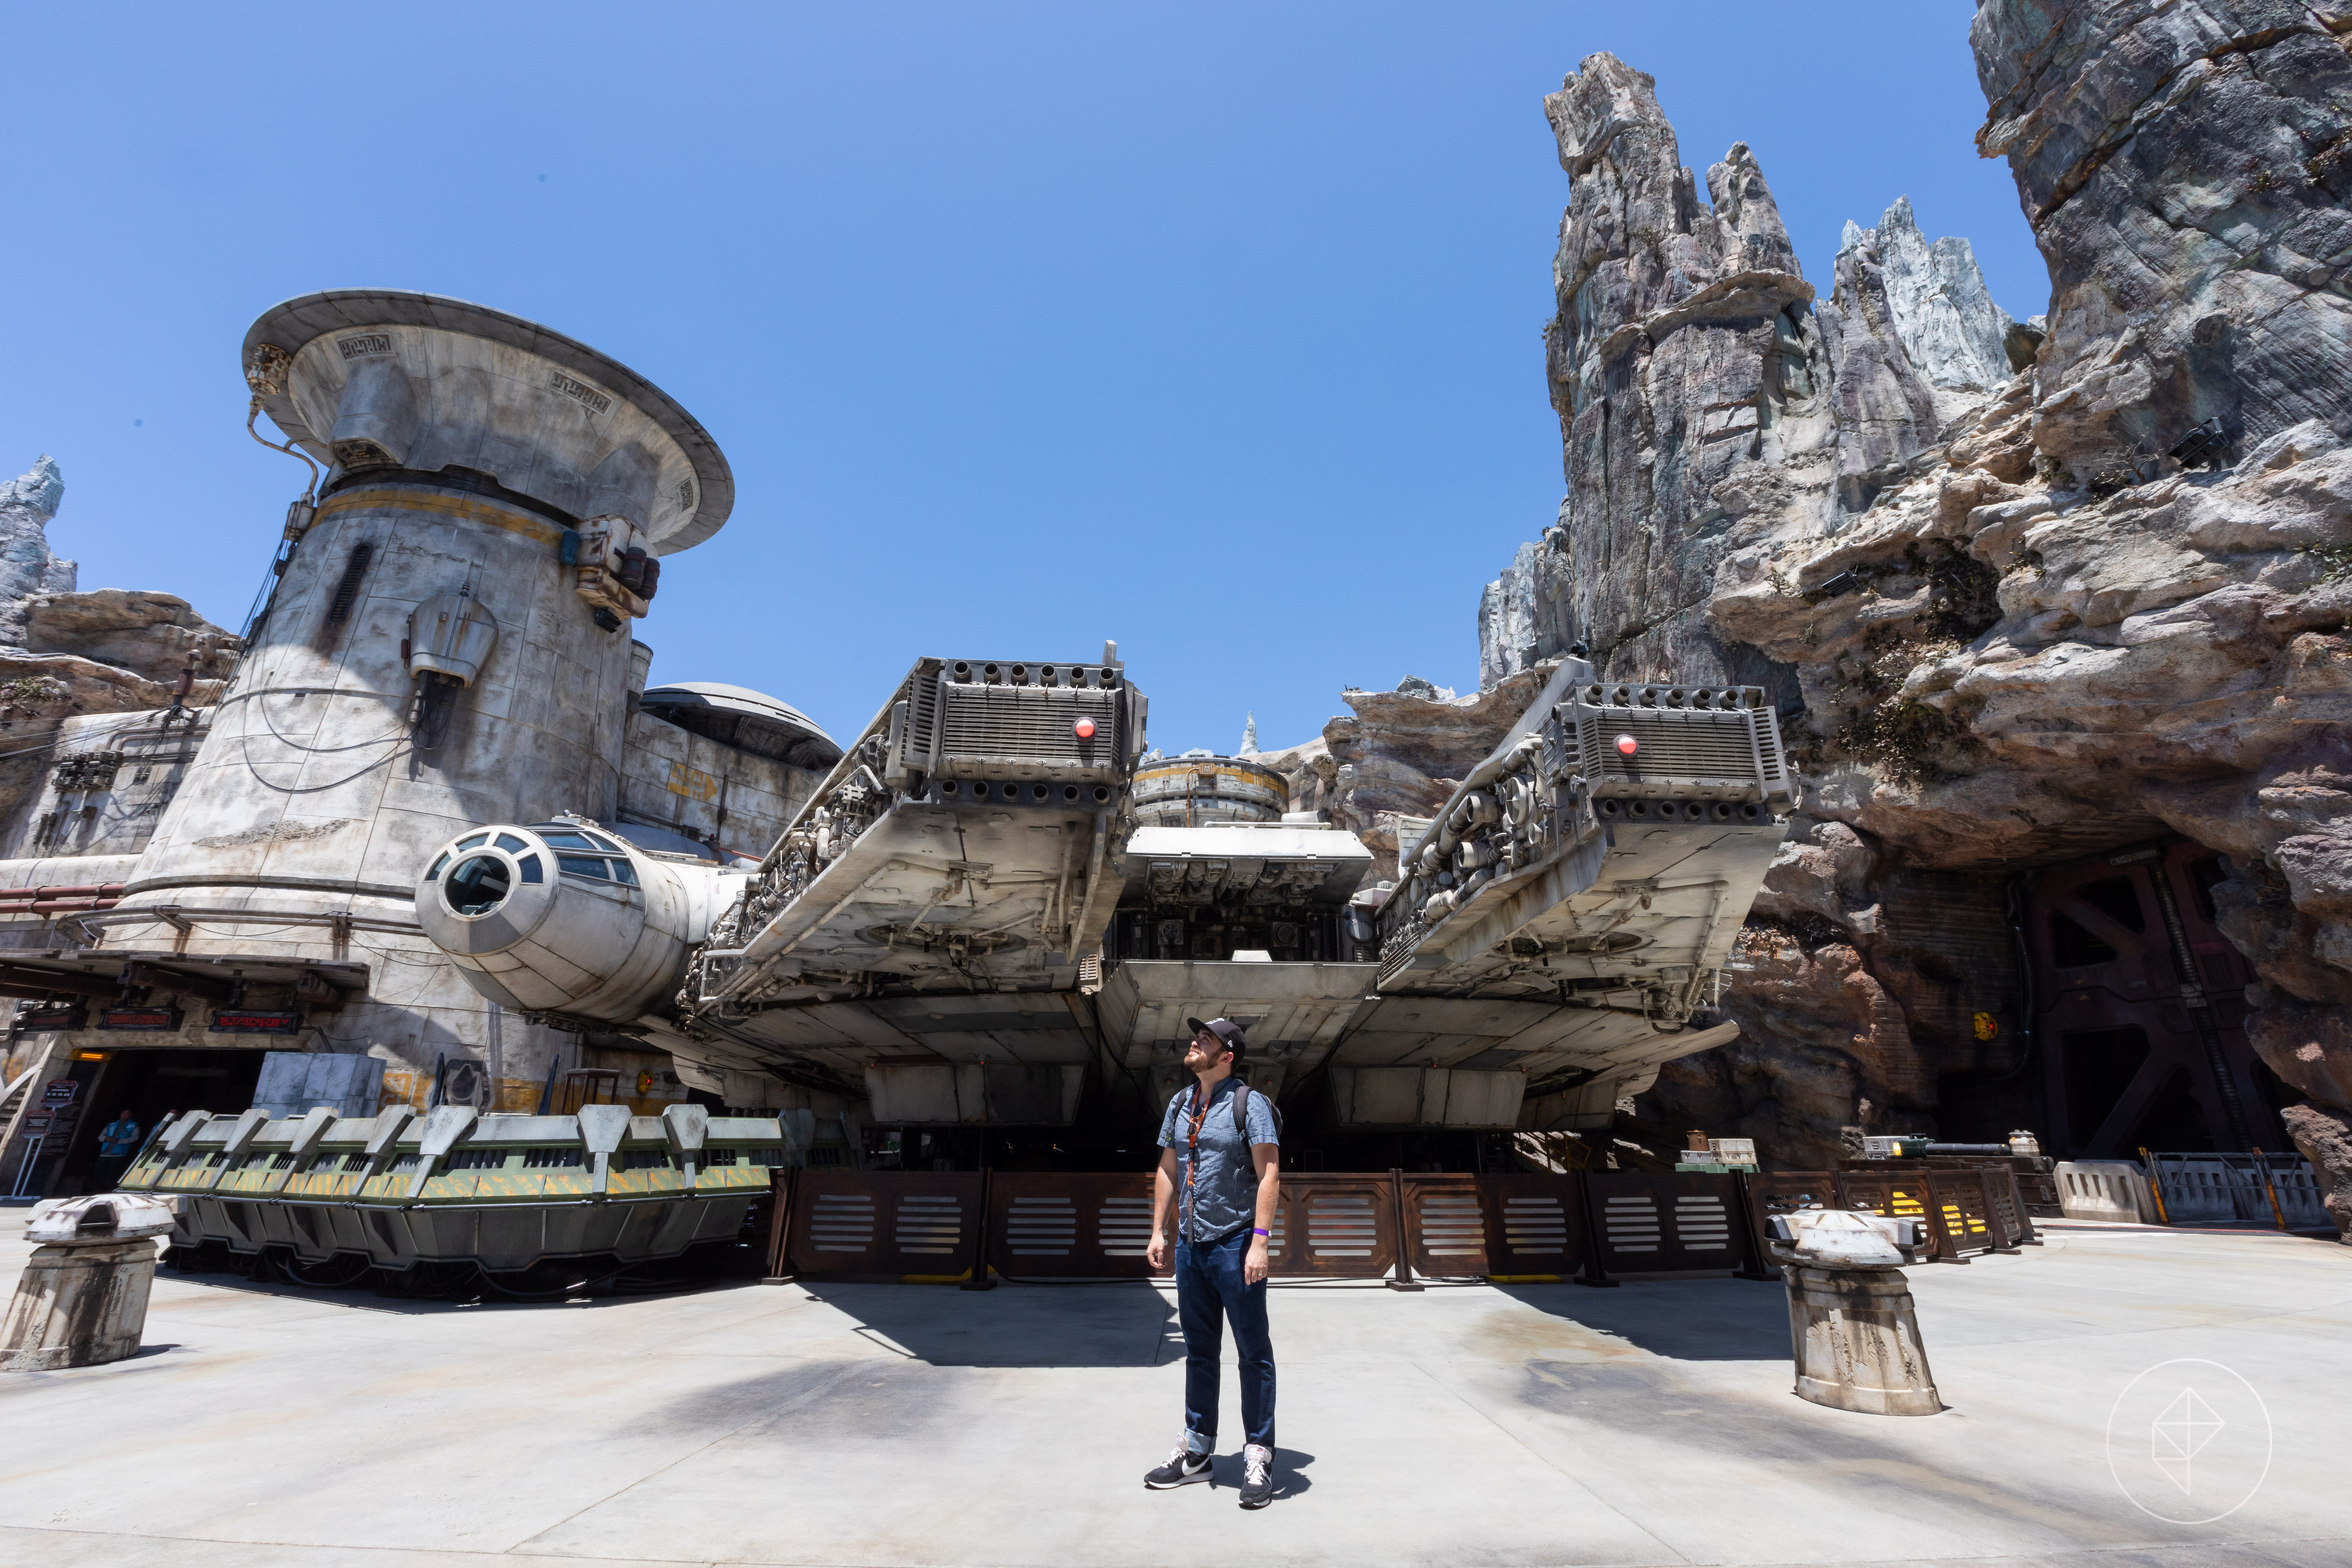 A tour of Disneyland's Star Wars Galaxy's Edge in 30 photos